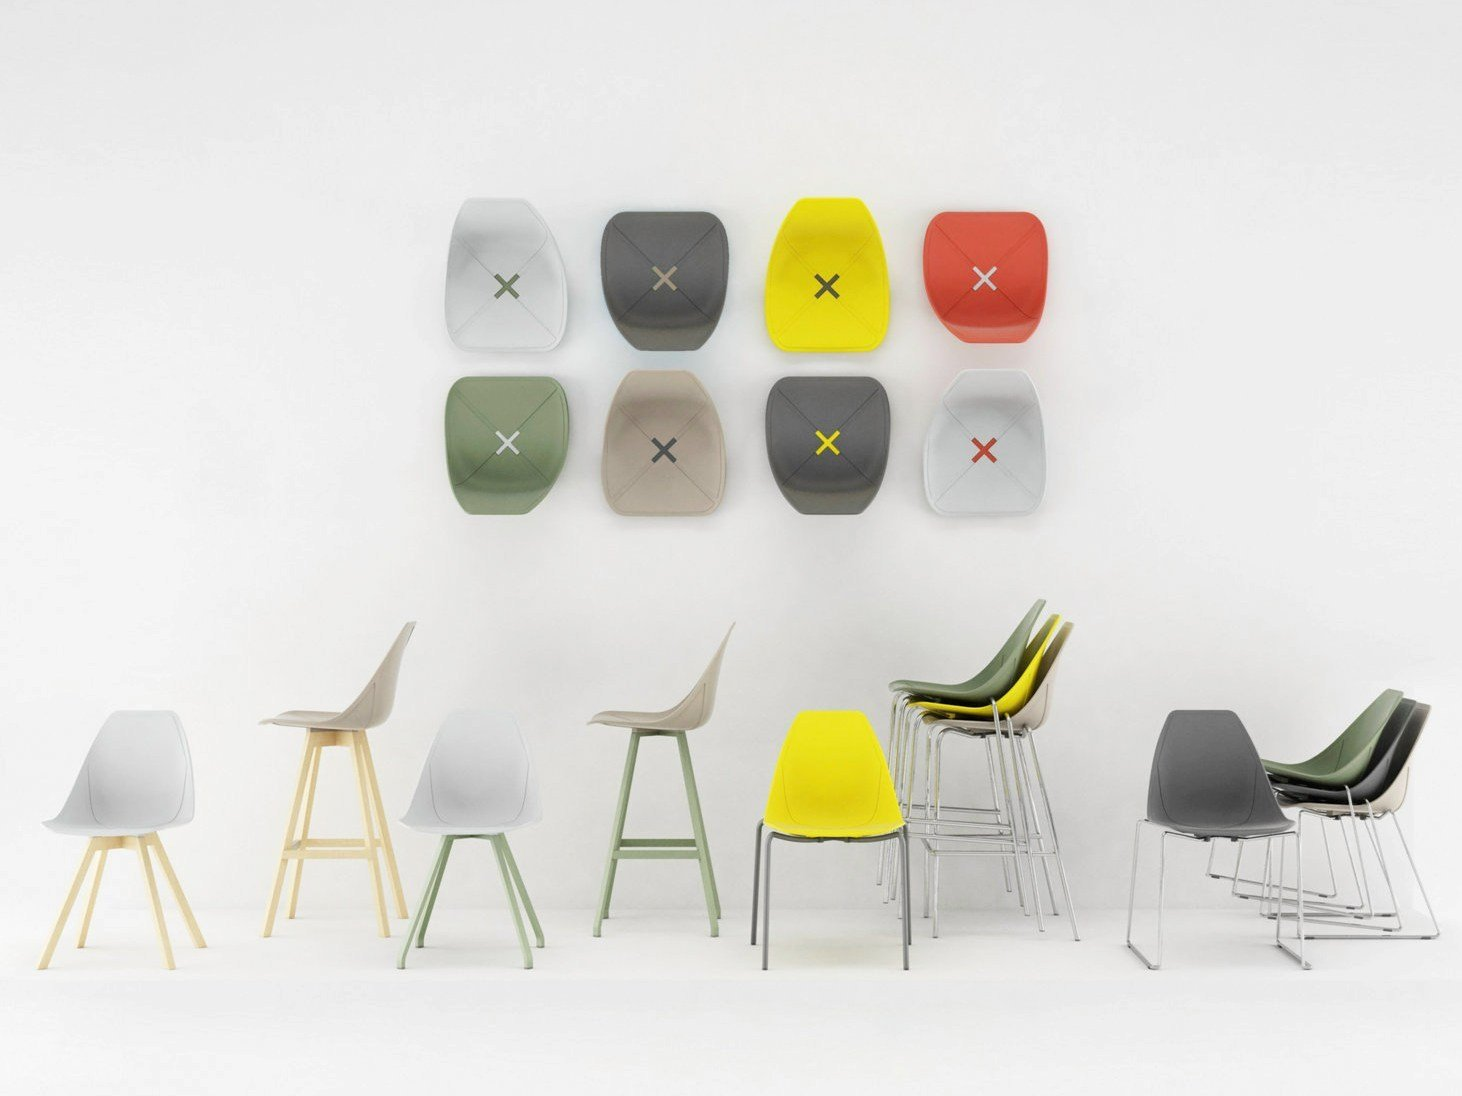 X stool counter stool x stool collection by alma design design mario mazzer - Chaises empilables design ...